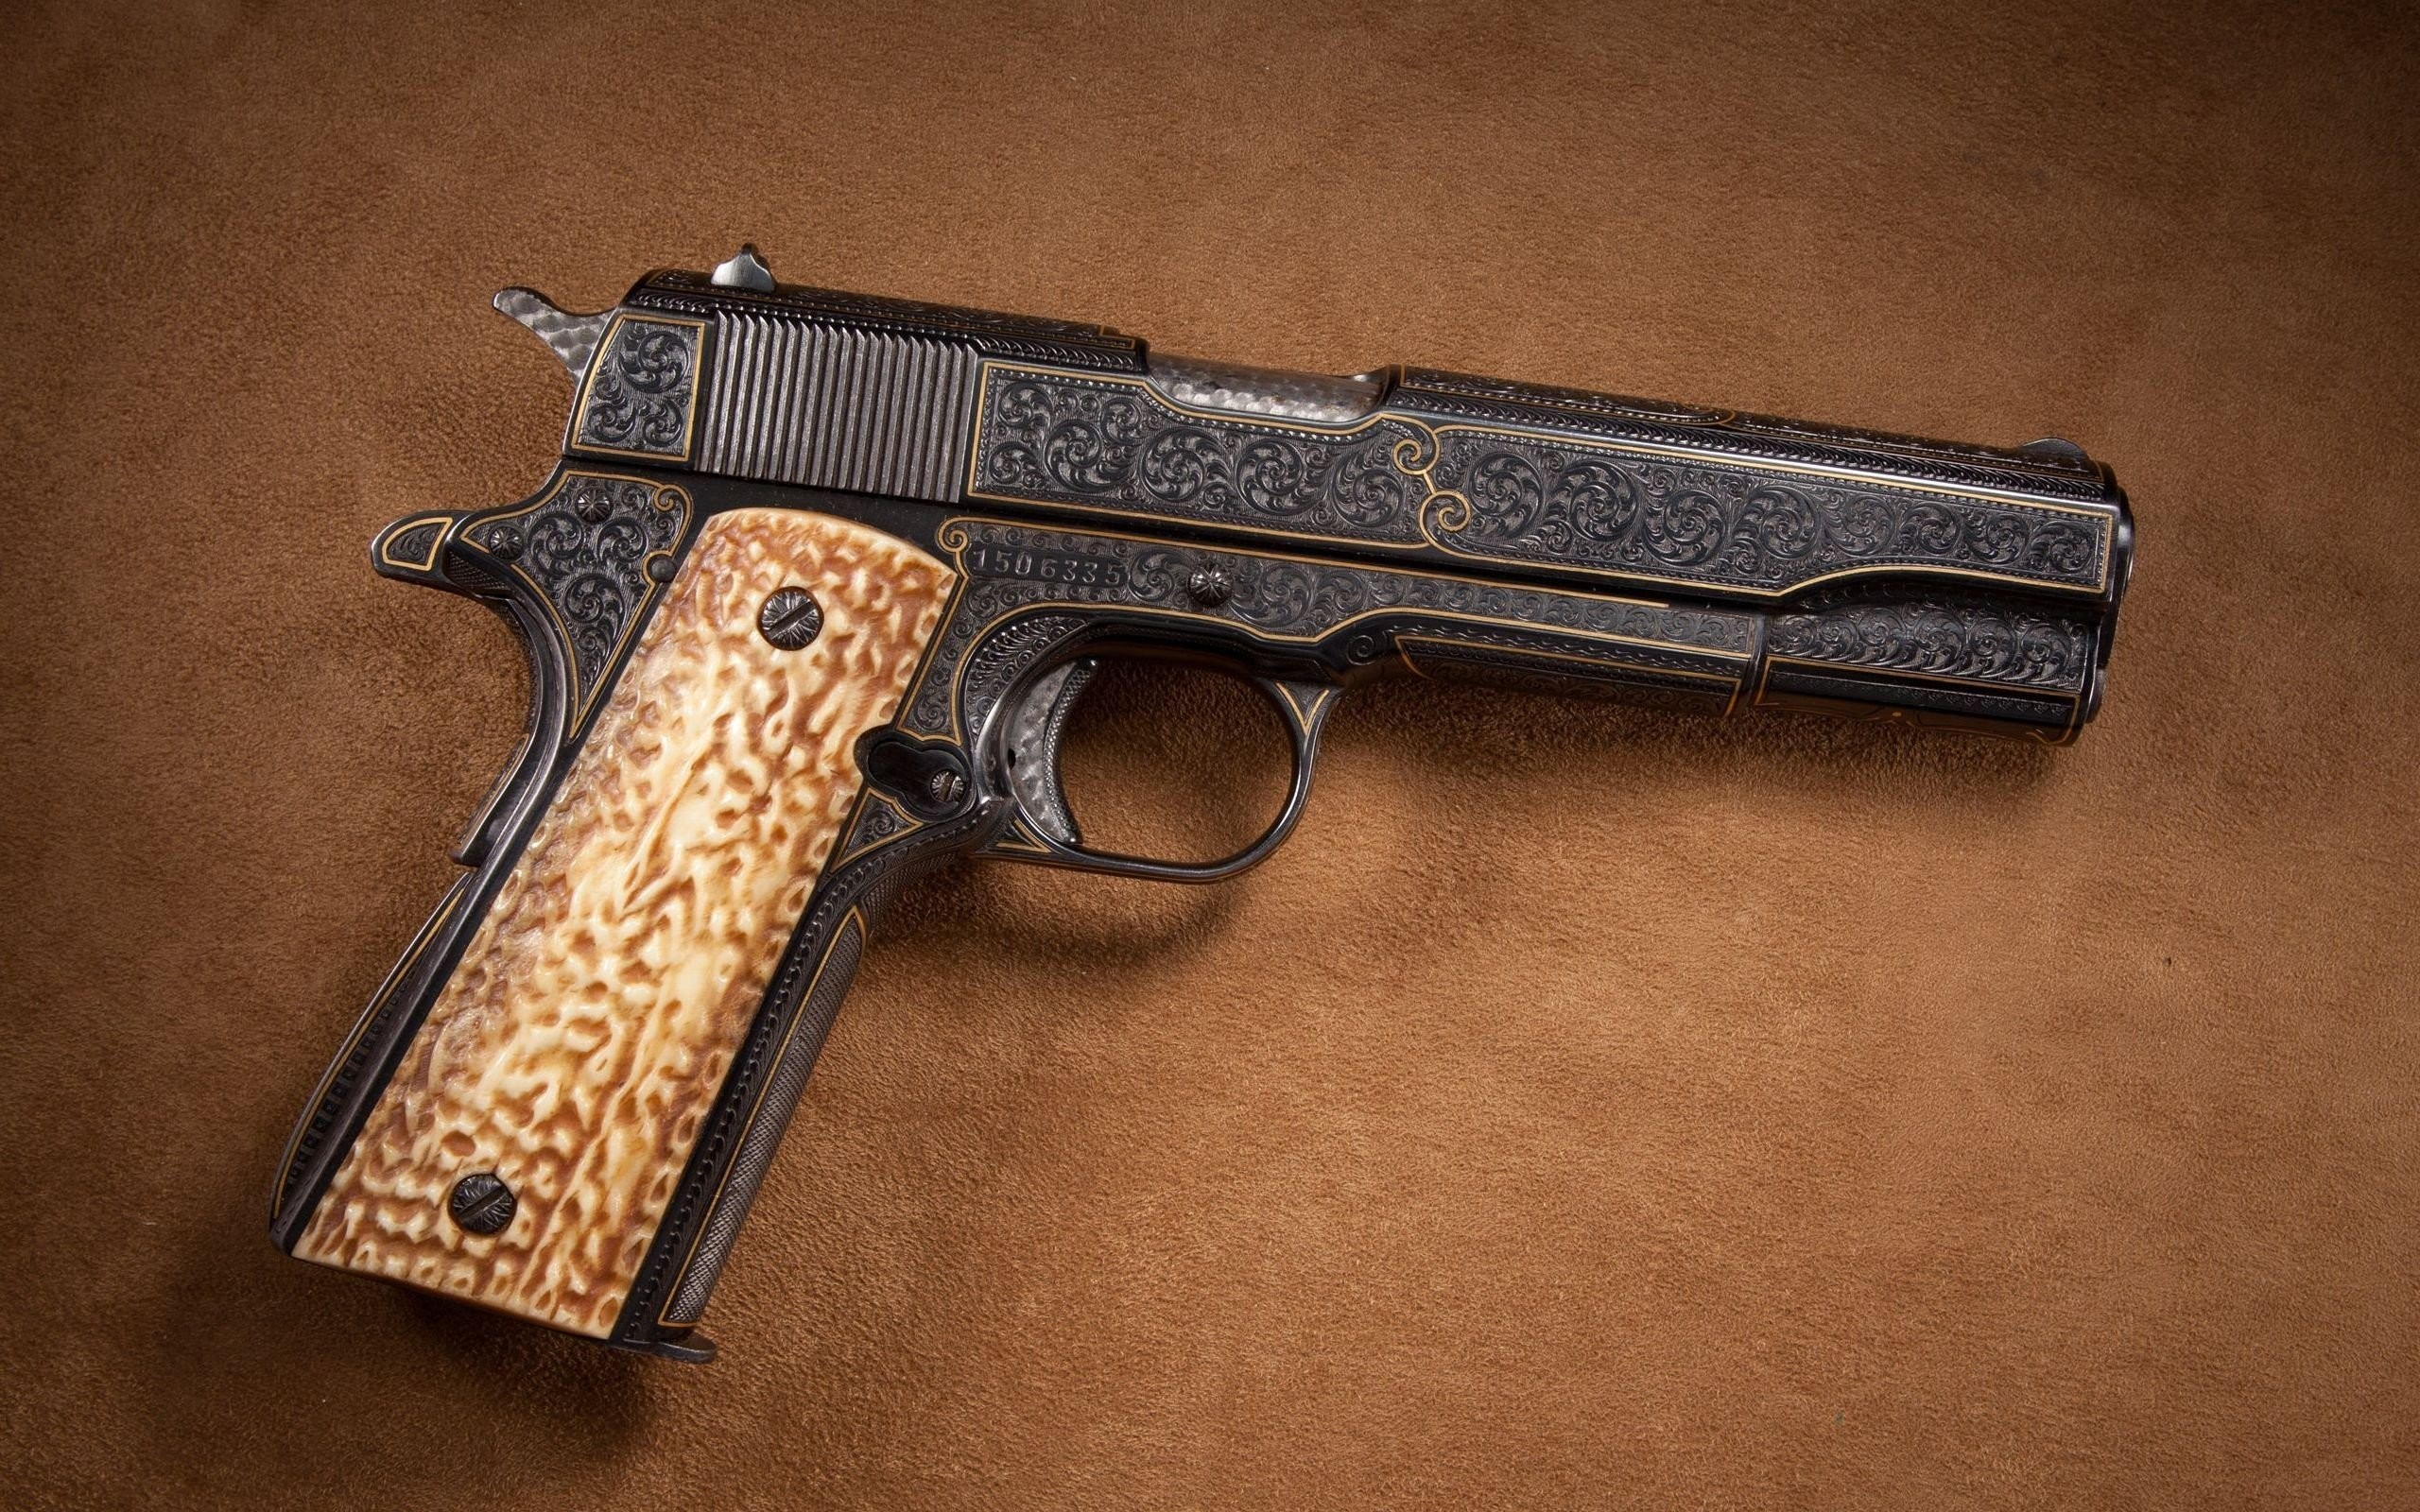 2560x1600 Weapons Guns Colt 1911 123825 ...